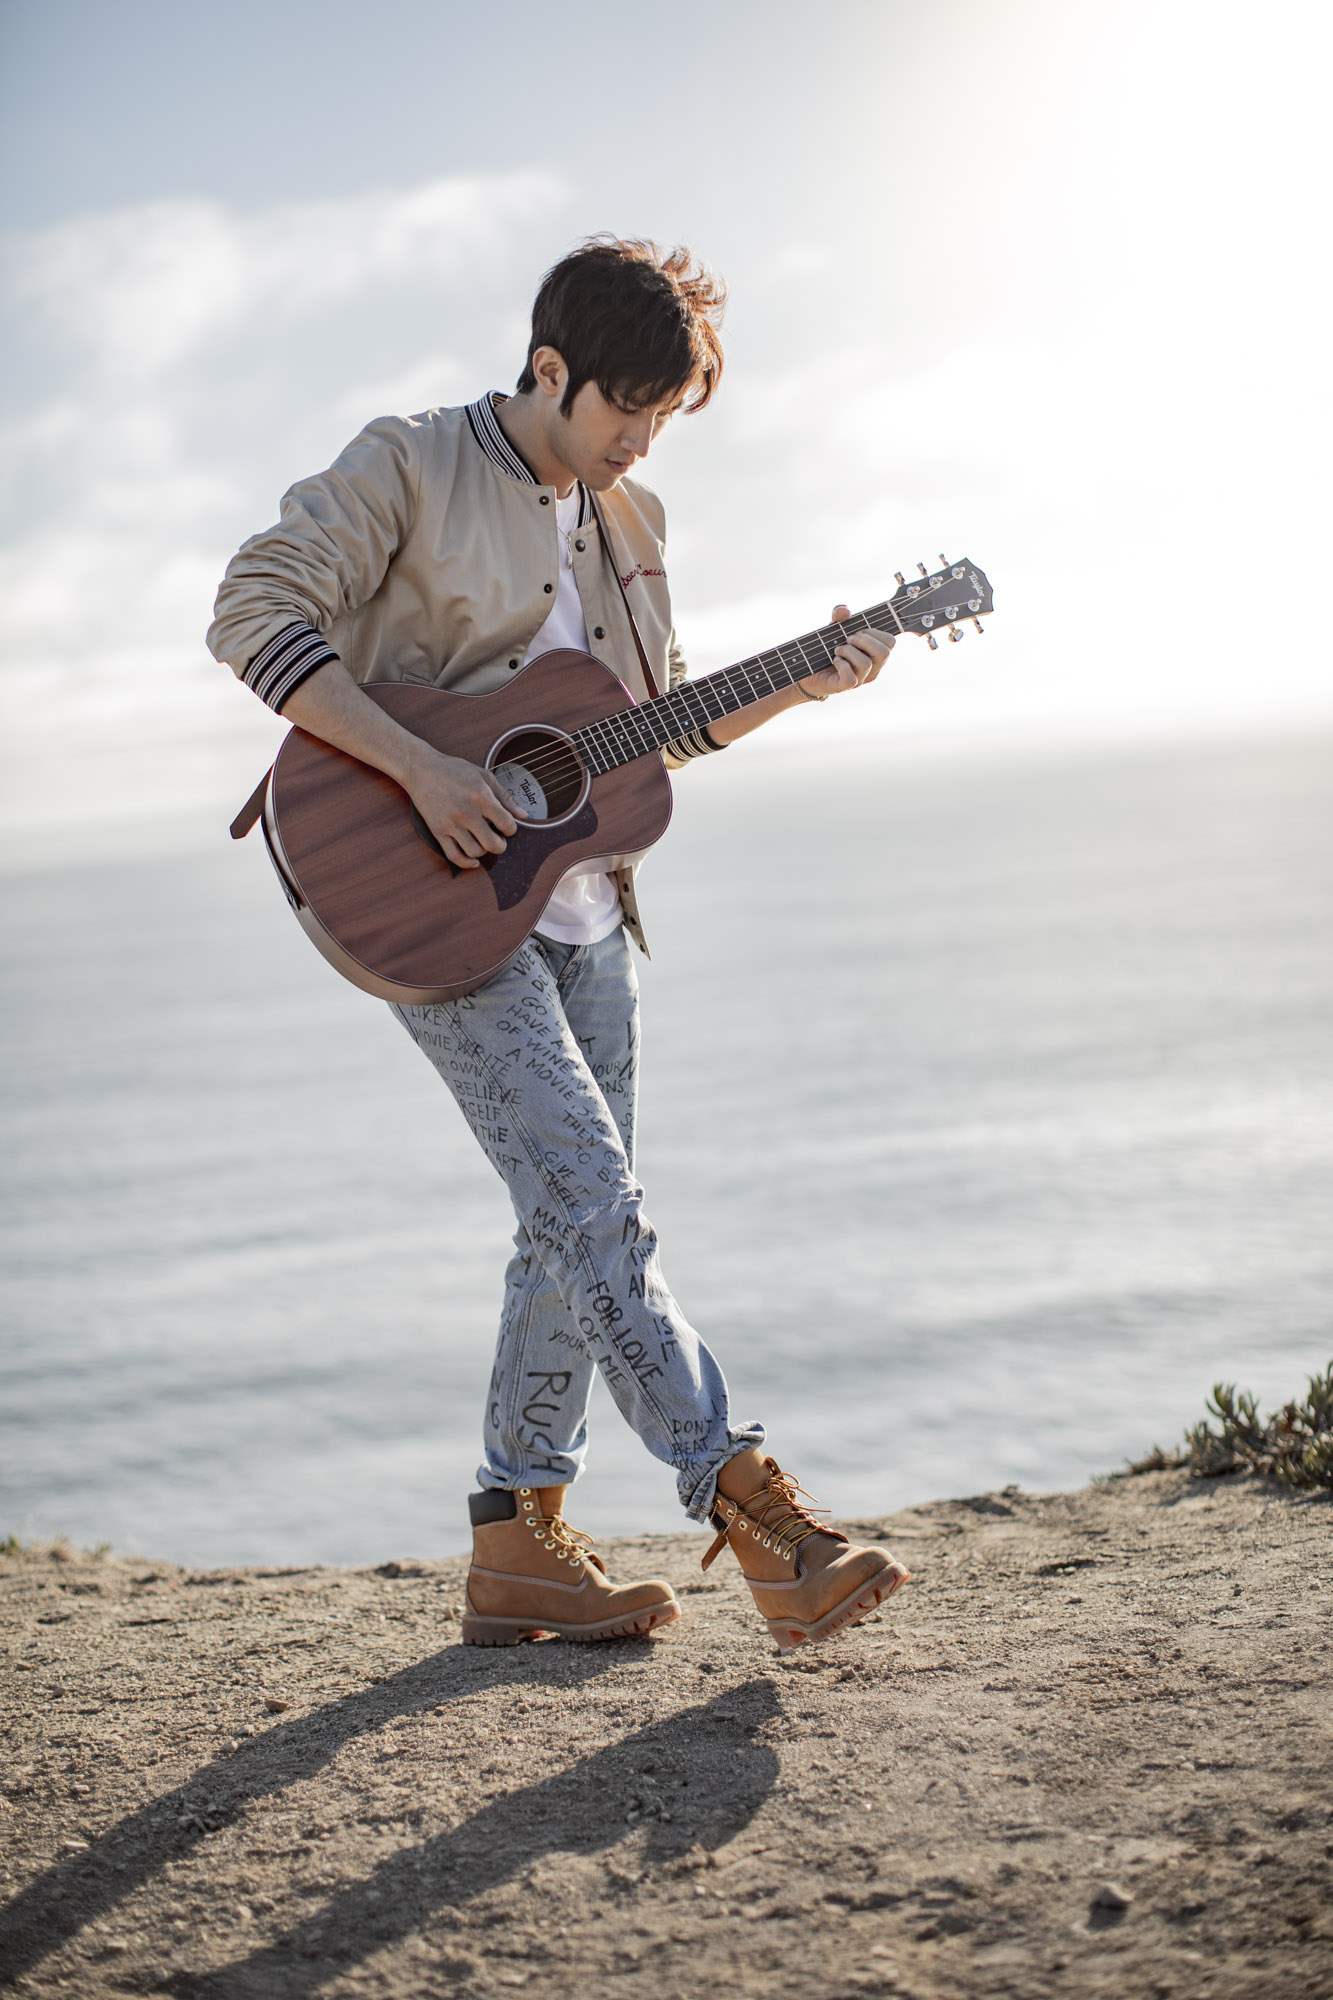 Man plays a guitar with the Pacific Ocean in the background